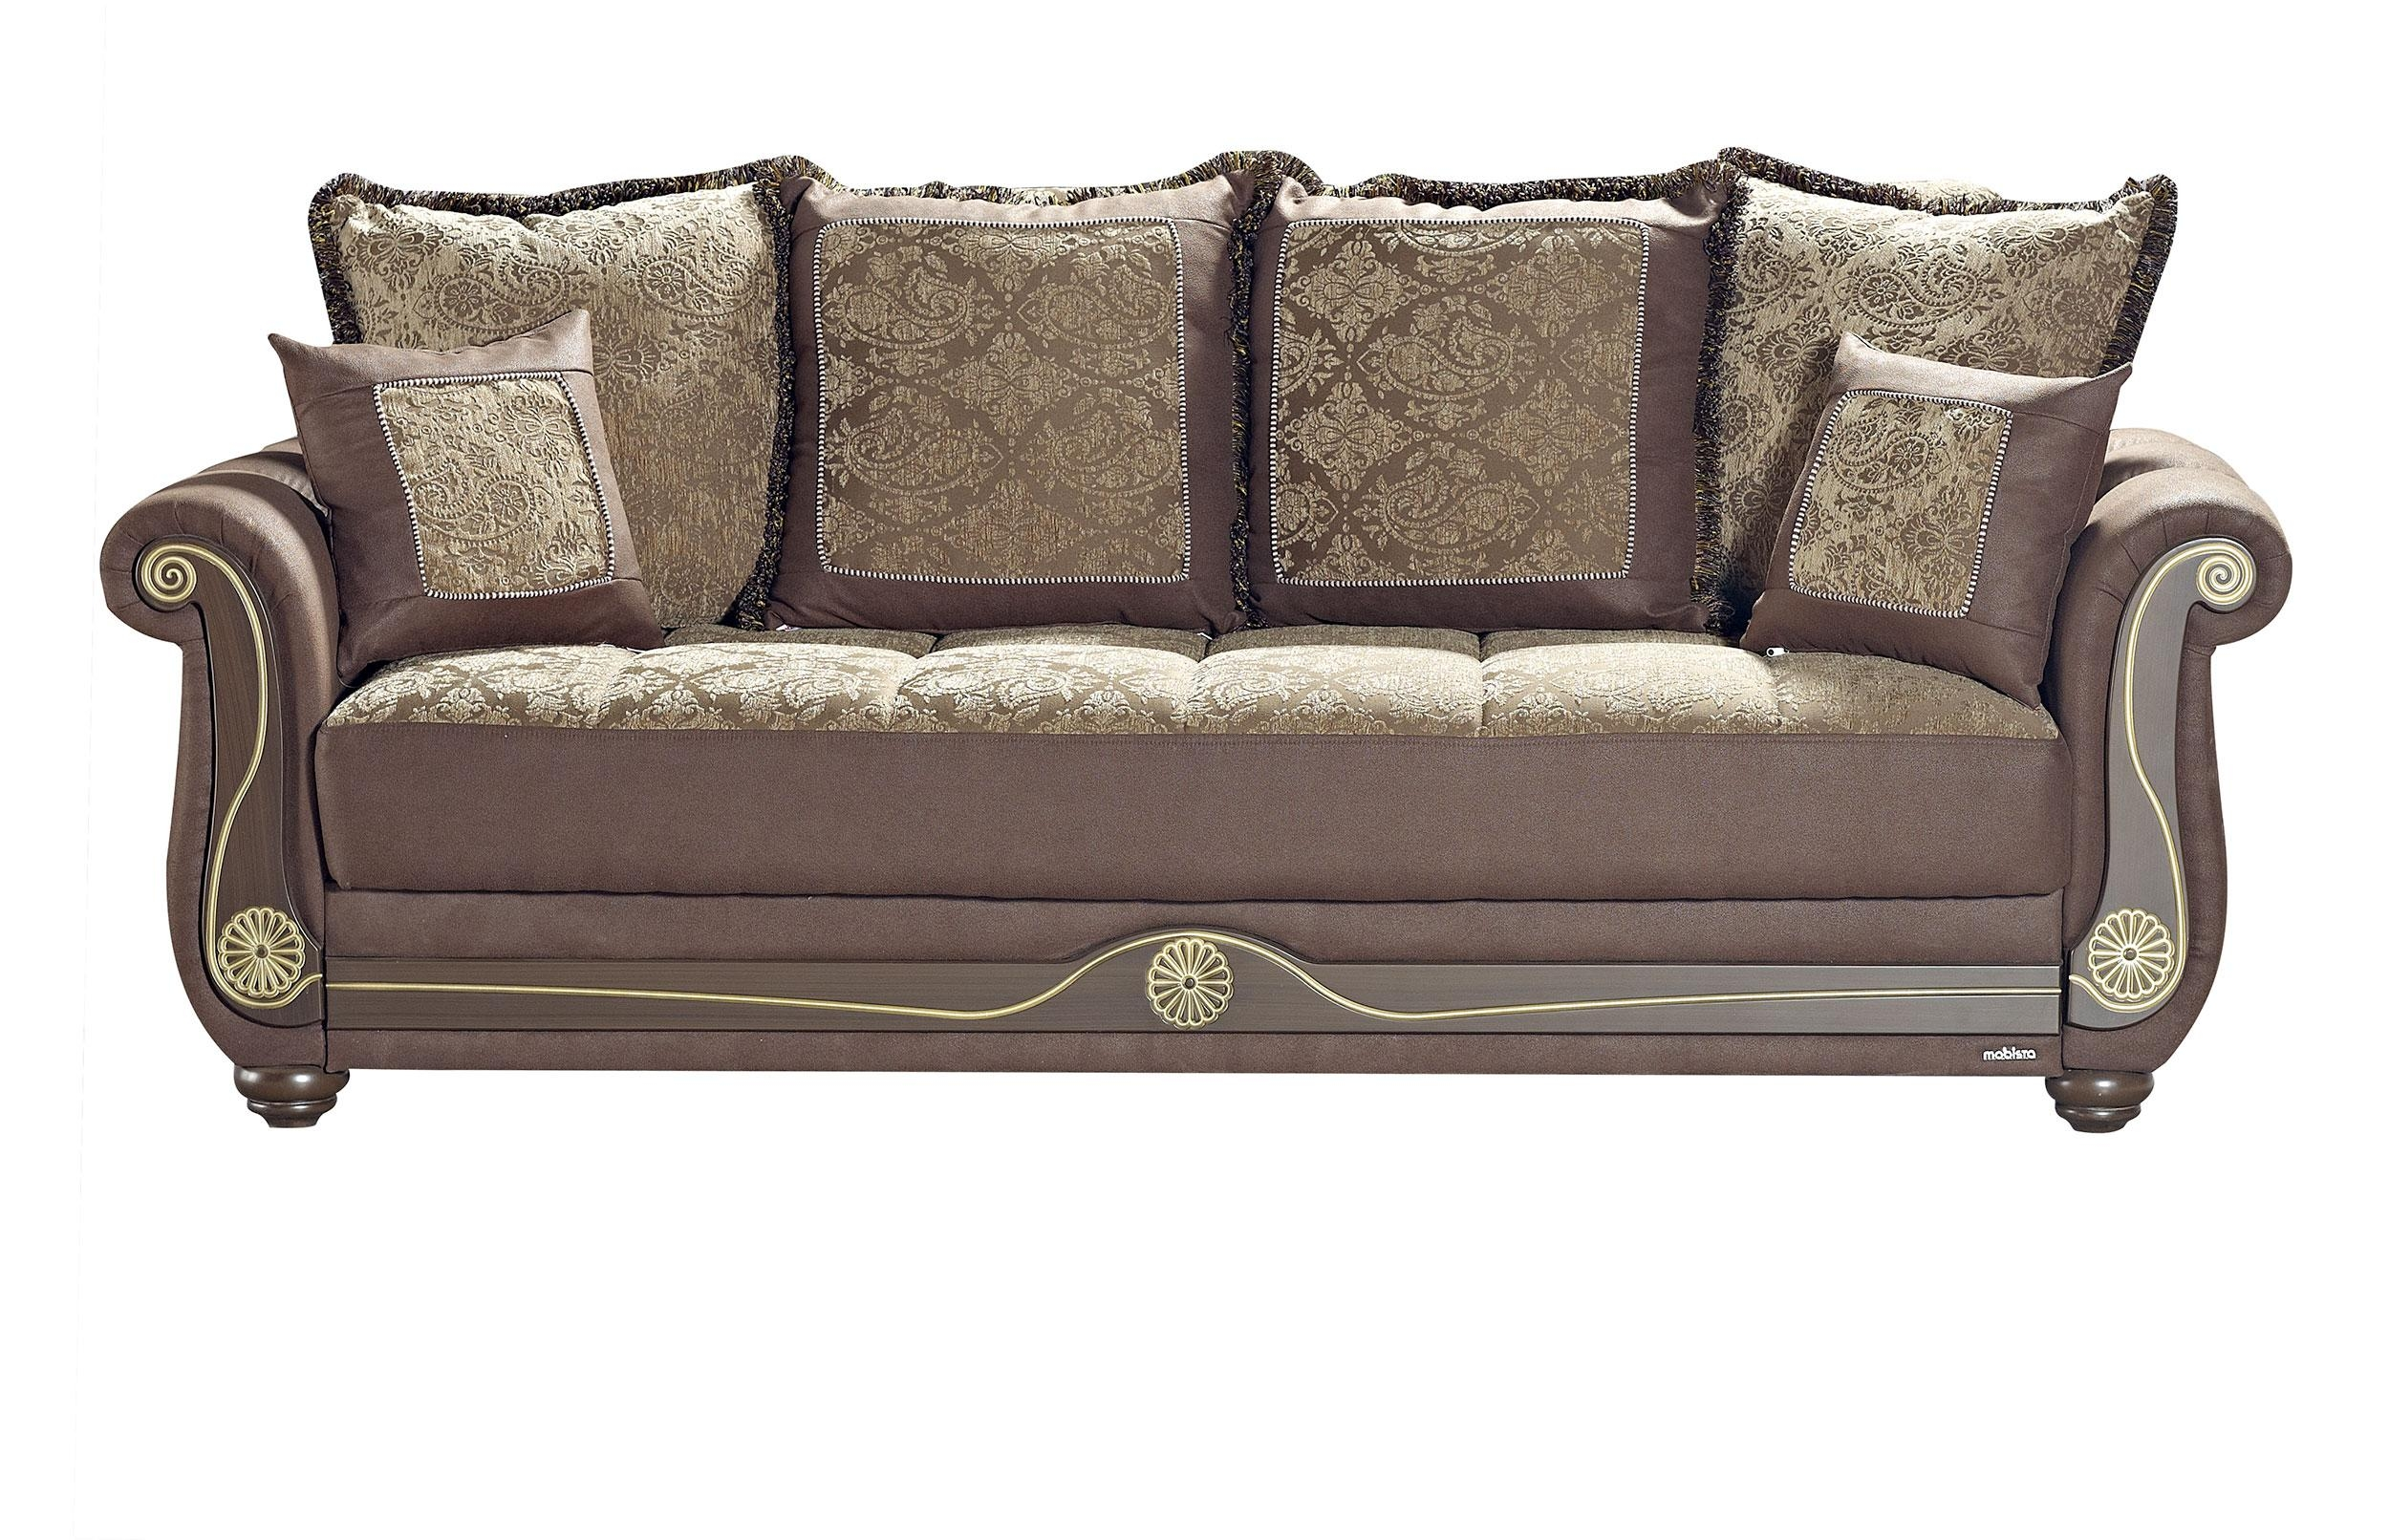 American Style Crown Brown Sofa Bedmobista In American Sofa Beds (Image 10 of 22)